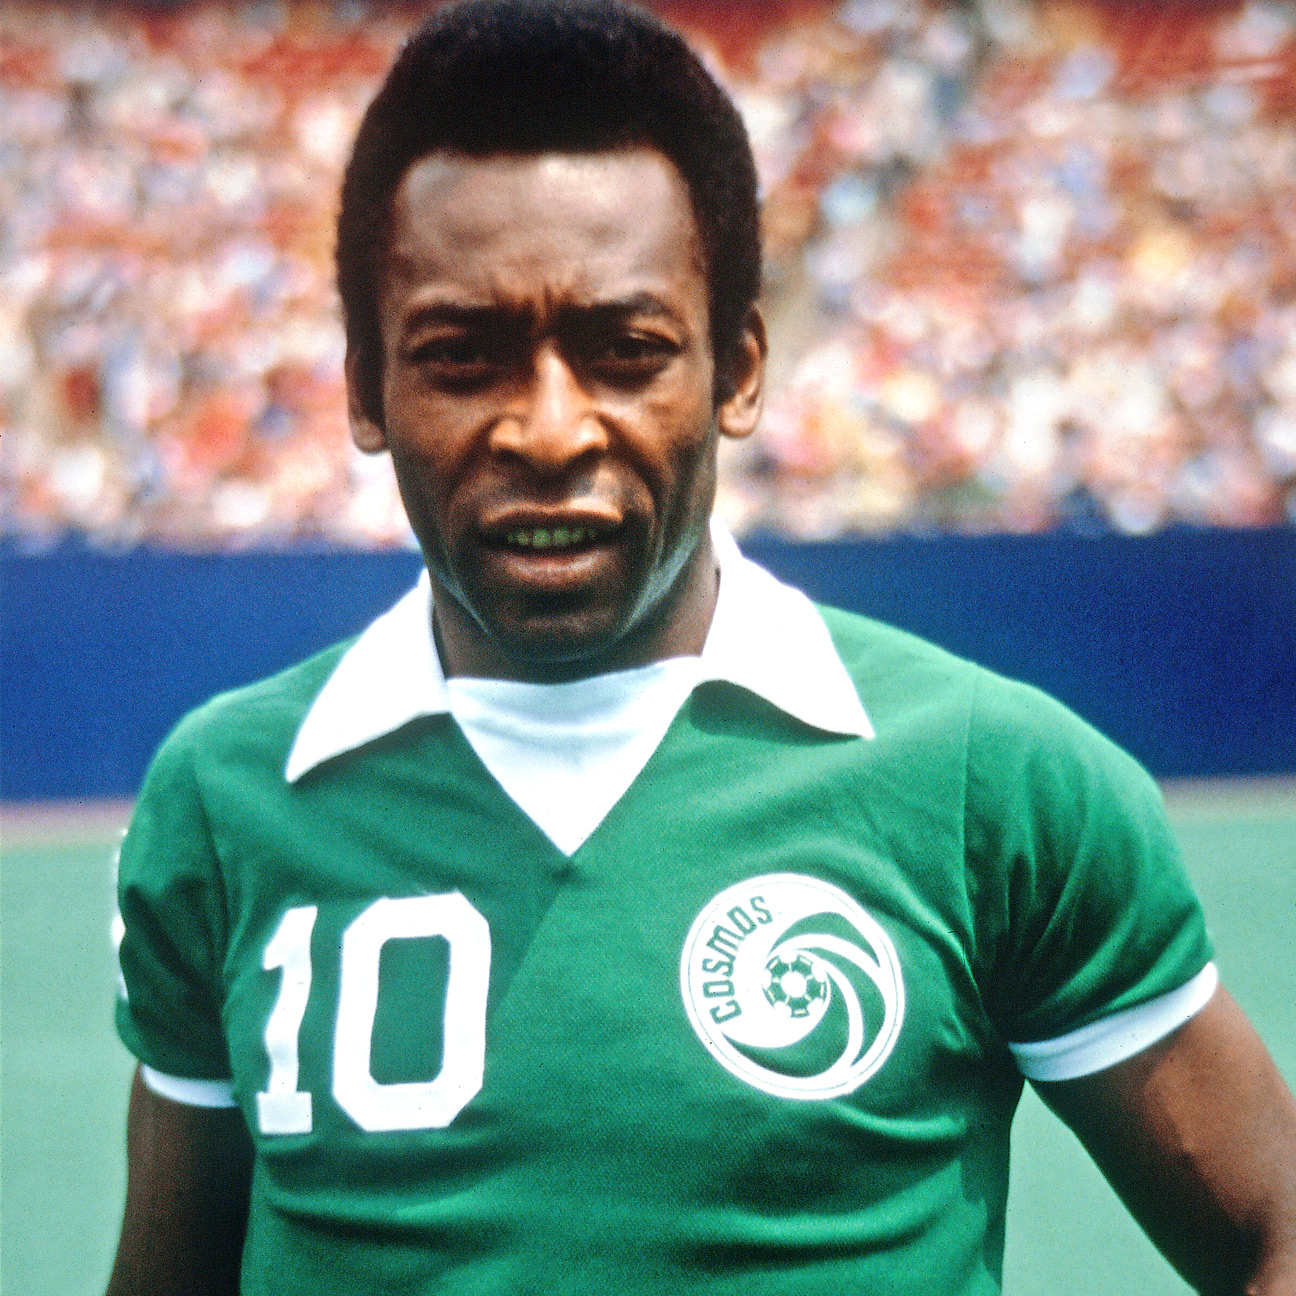 Pele says New York Giants asked him to be a kicker